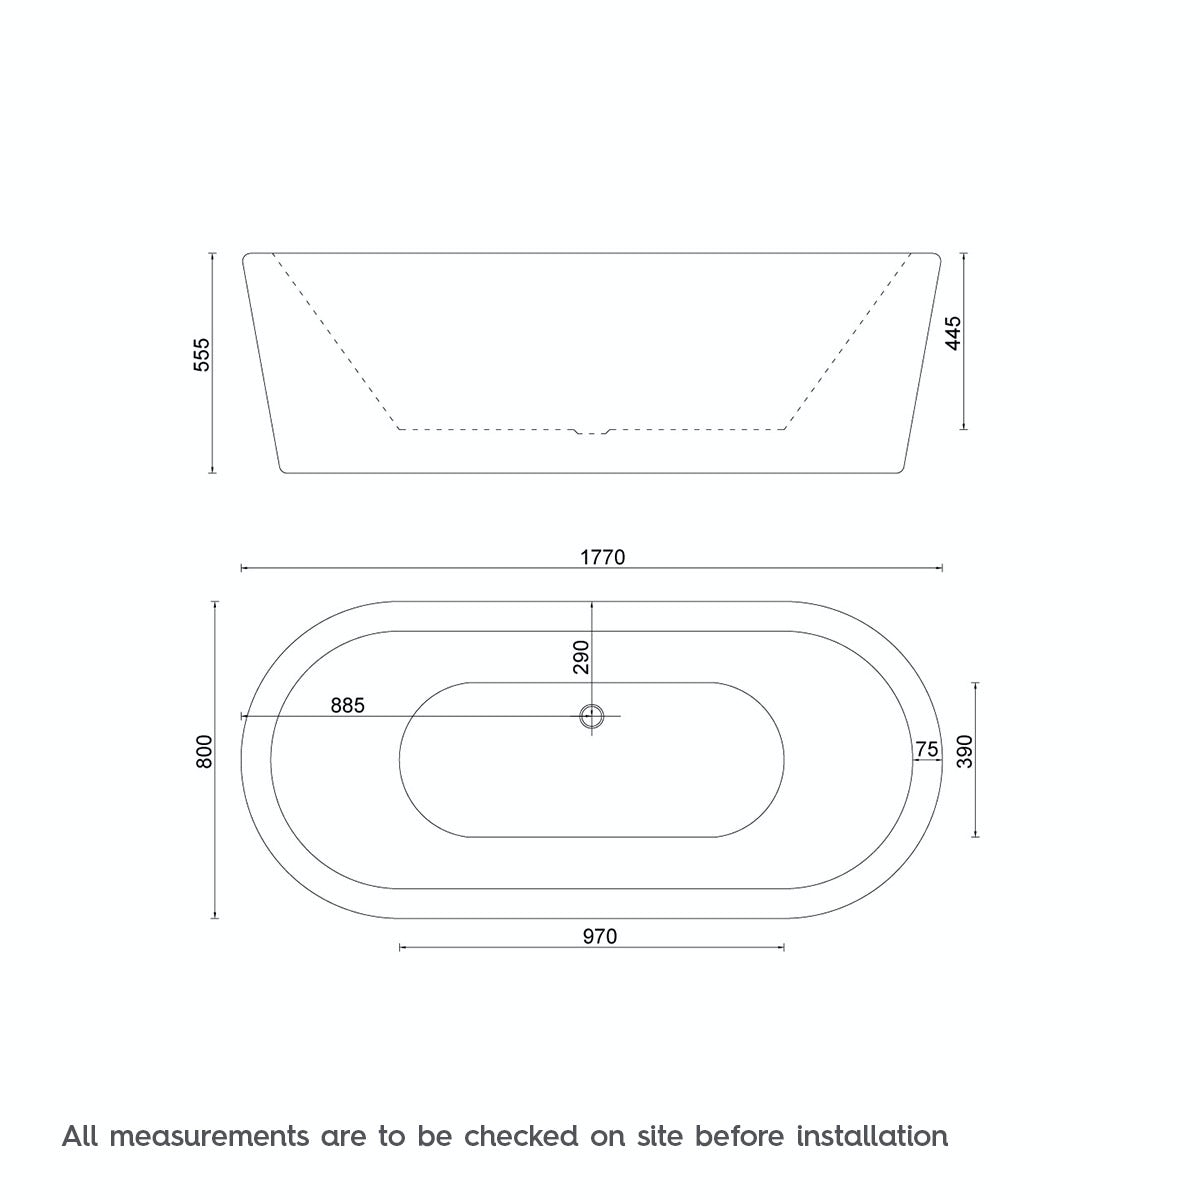 Dimensions for Crescent freestanding bath 1770 x 800 TV special